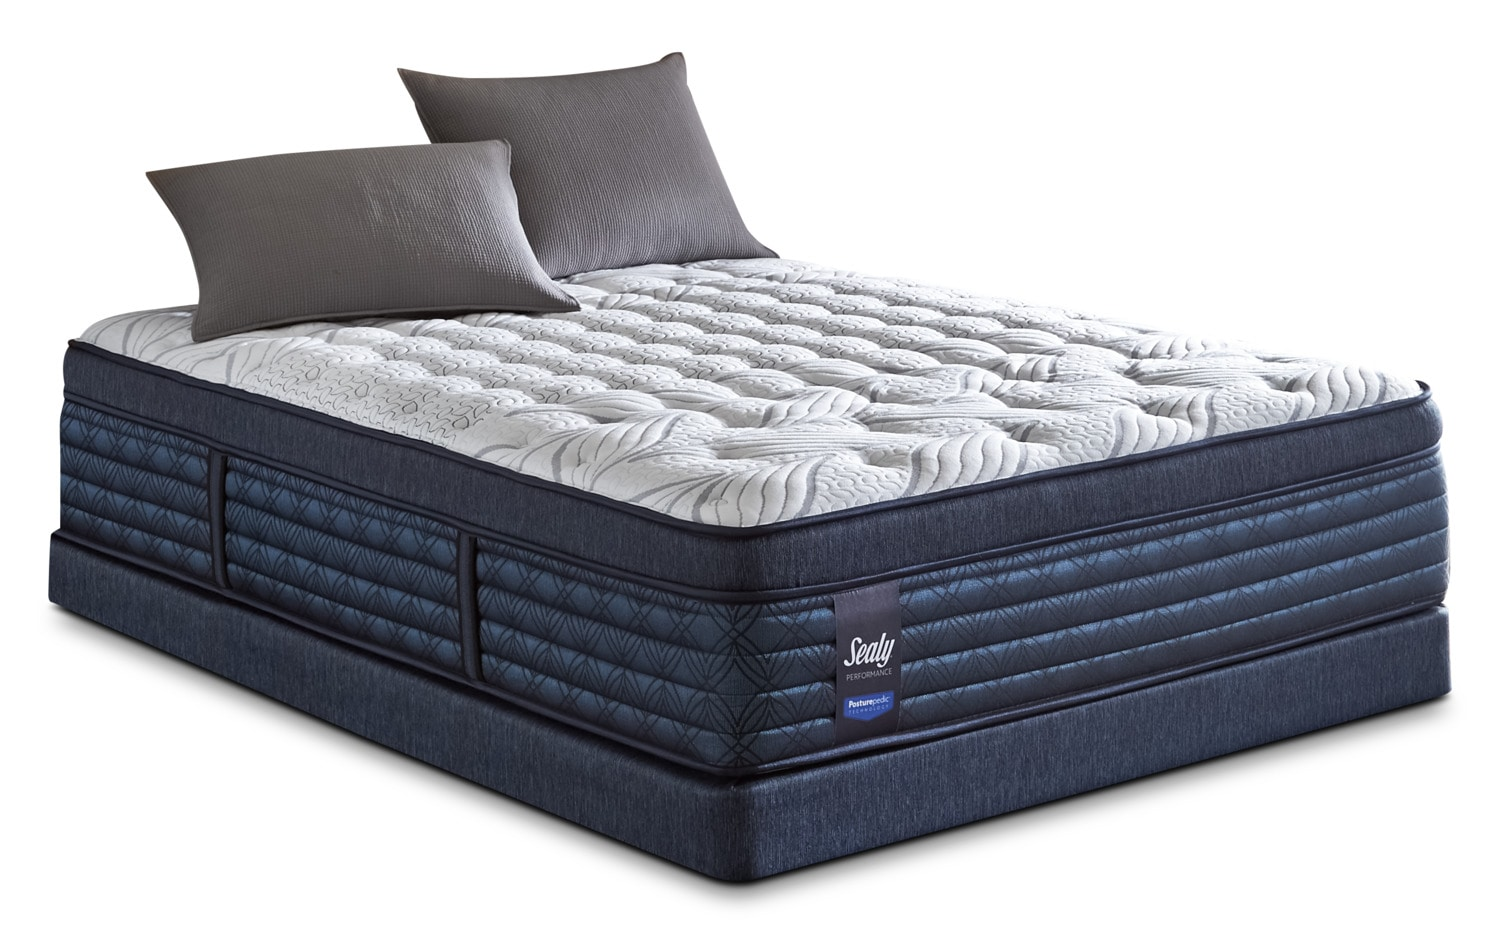 Sealy Posturepedic ProBack Hockenheim Euro-Top Firm Twin Mattress Set